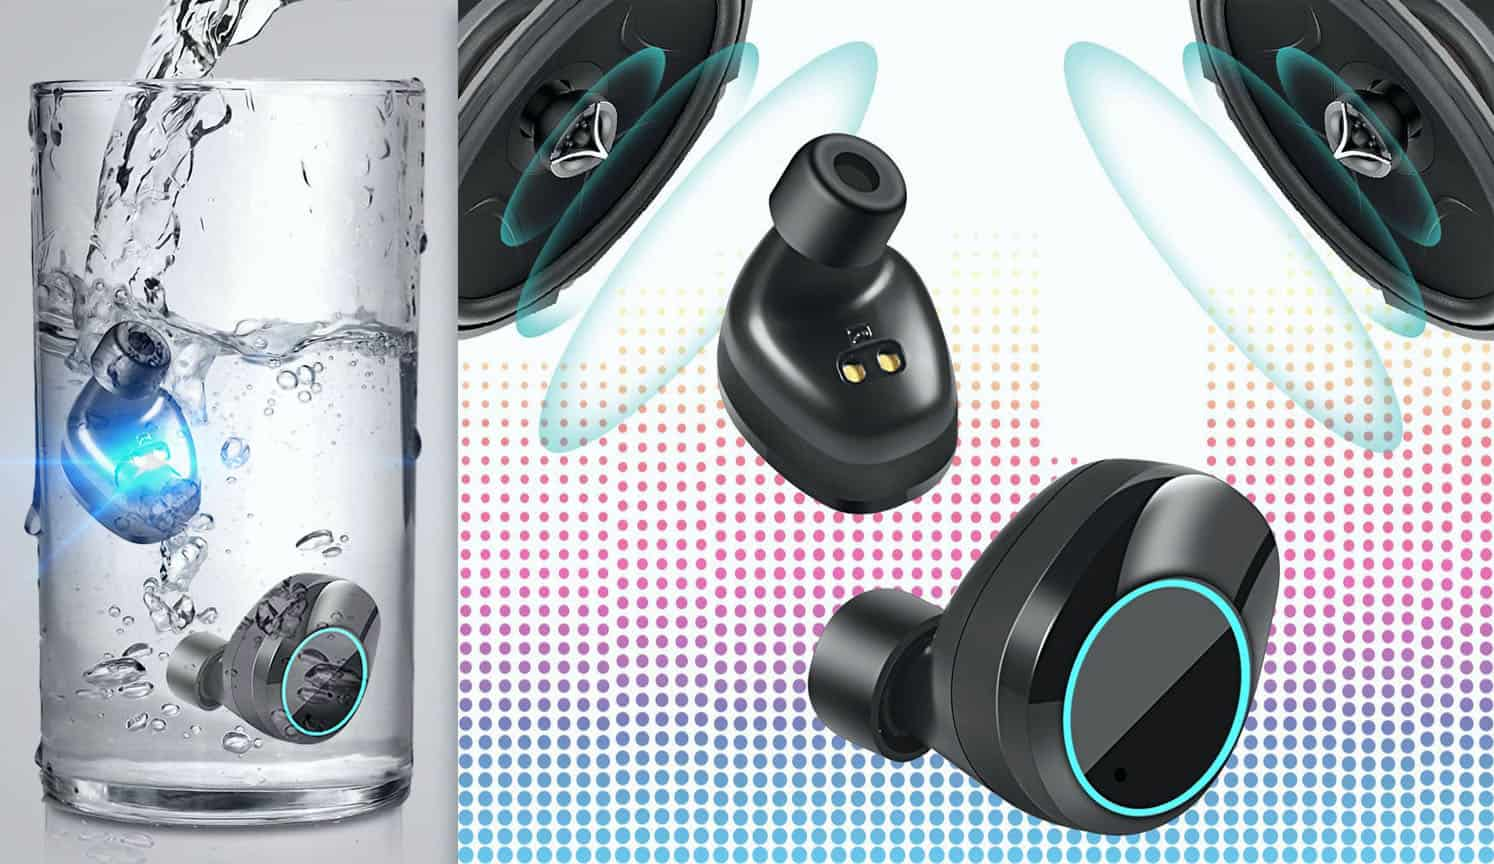 Waterproof Bluetooth Earbuds as the third related product of the Best Earbud Headphones